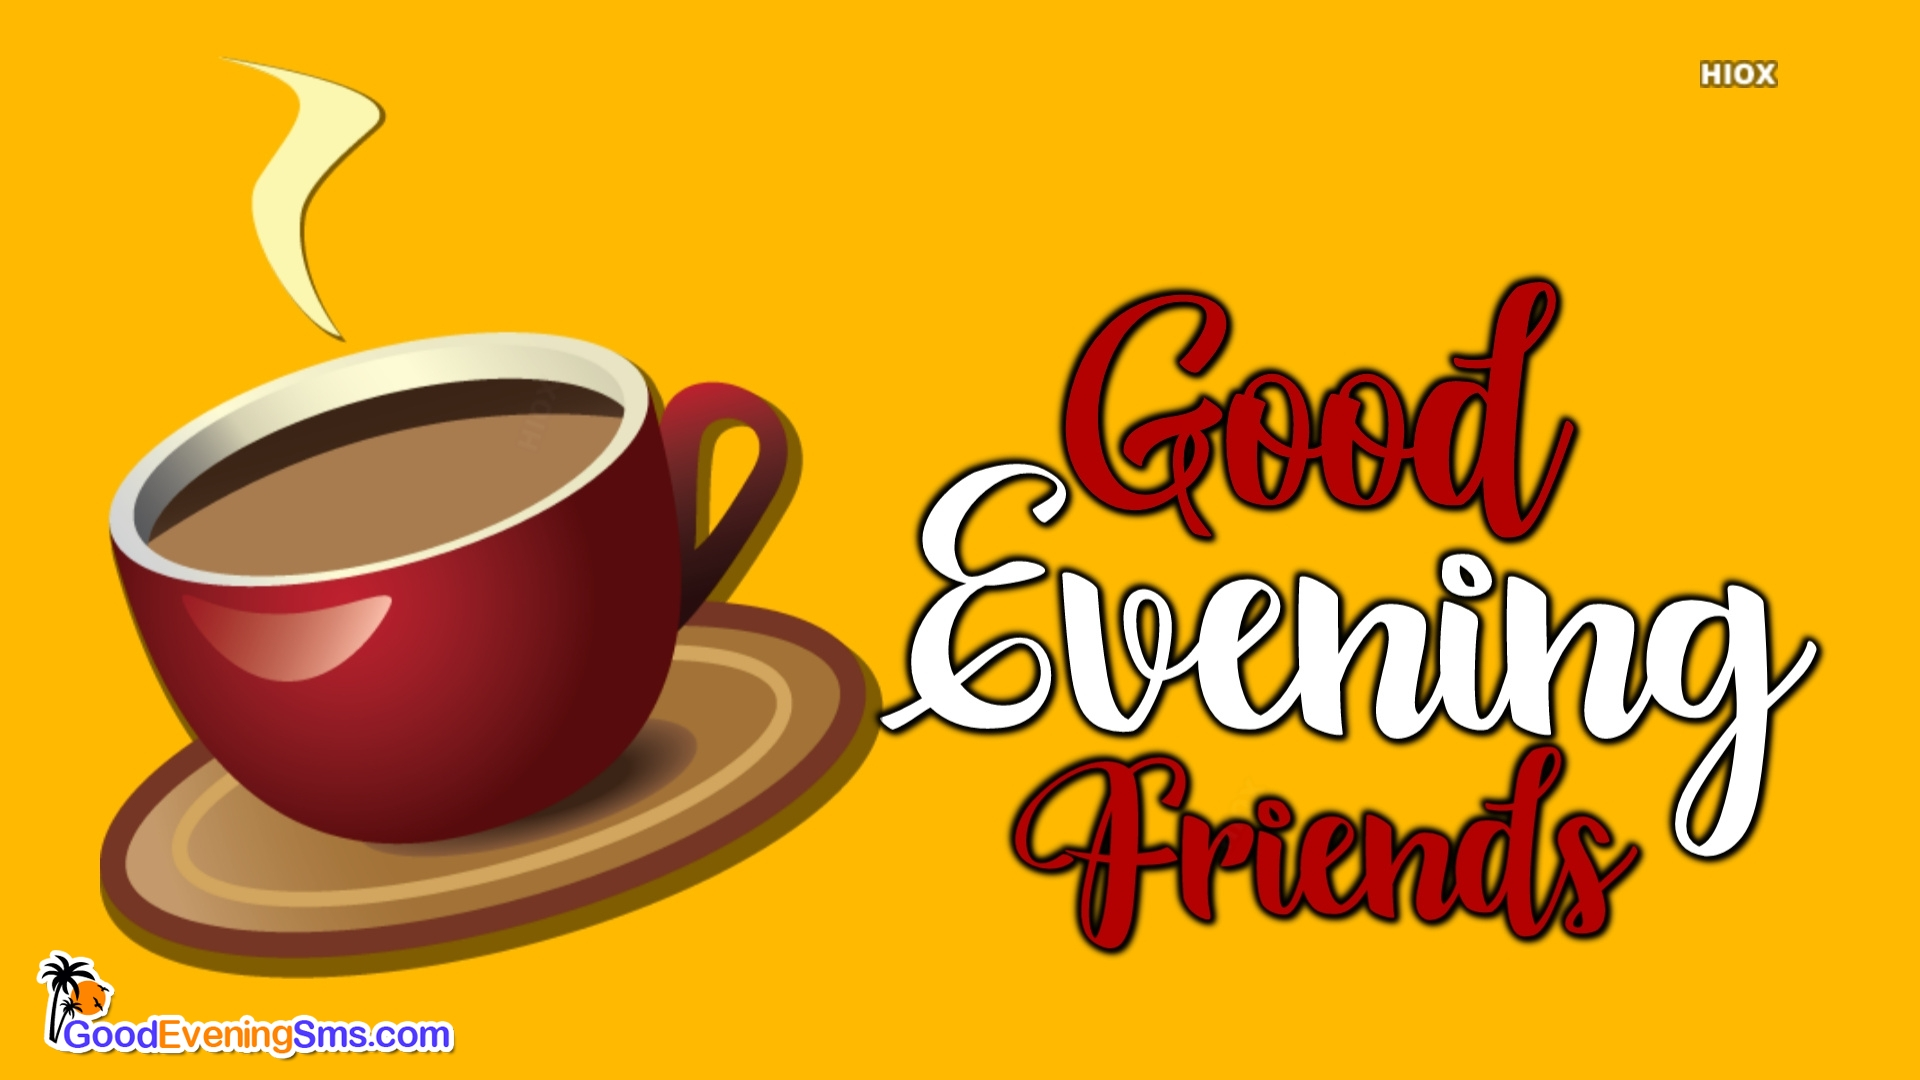 Good Evening Wishes for Friends with Coffee